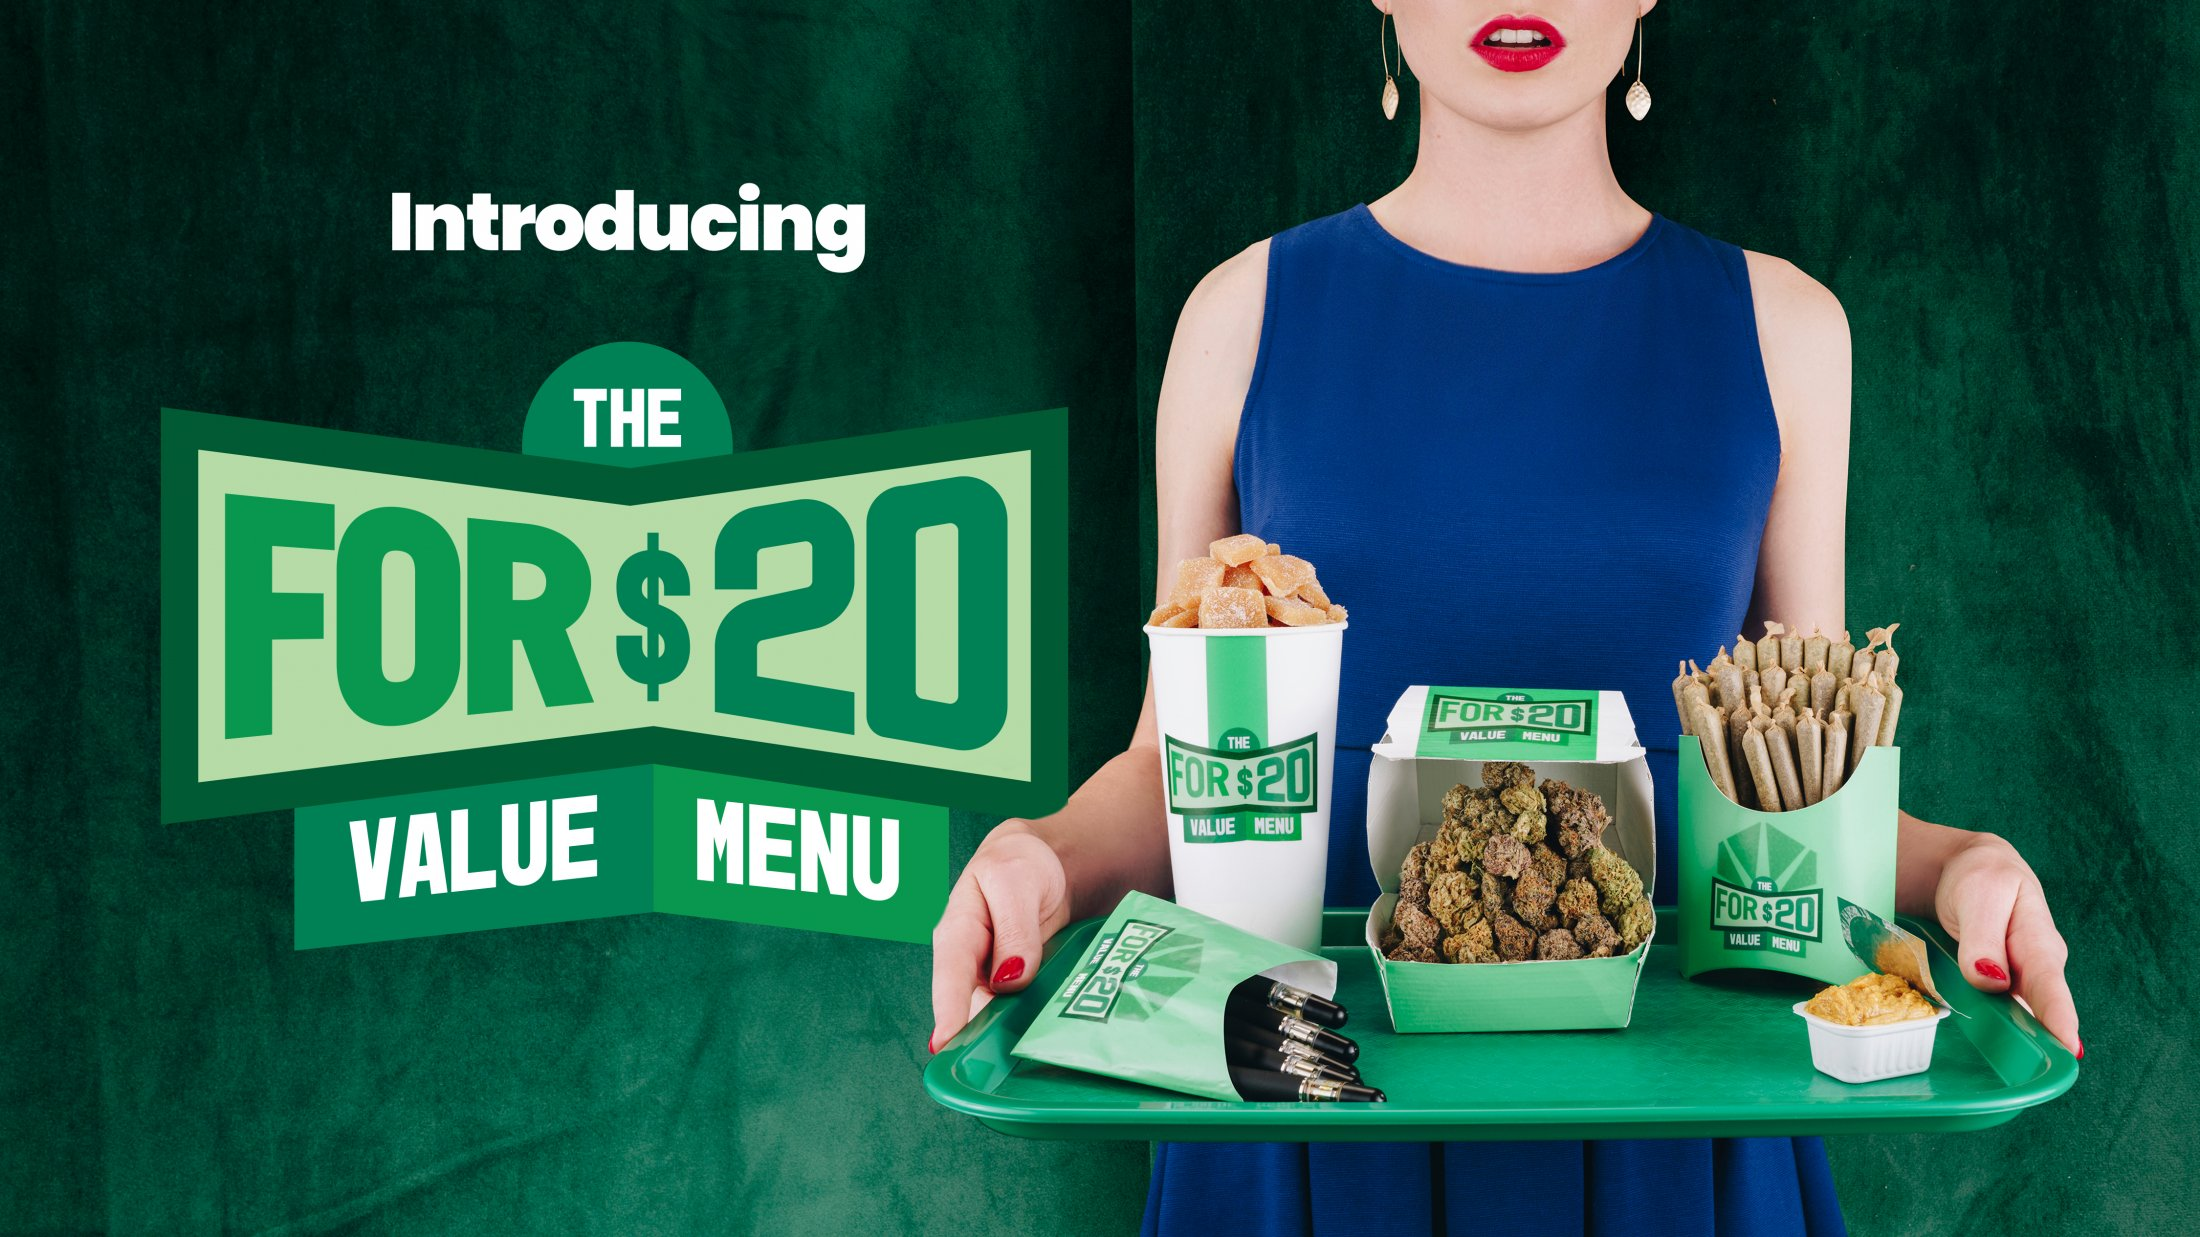 Thrive Cannabis Marketplace: For $20 Value Menu